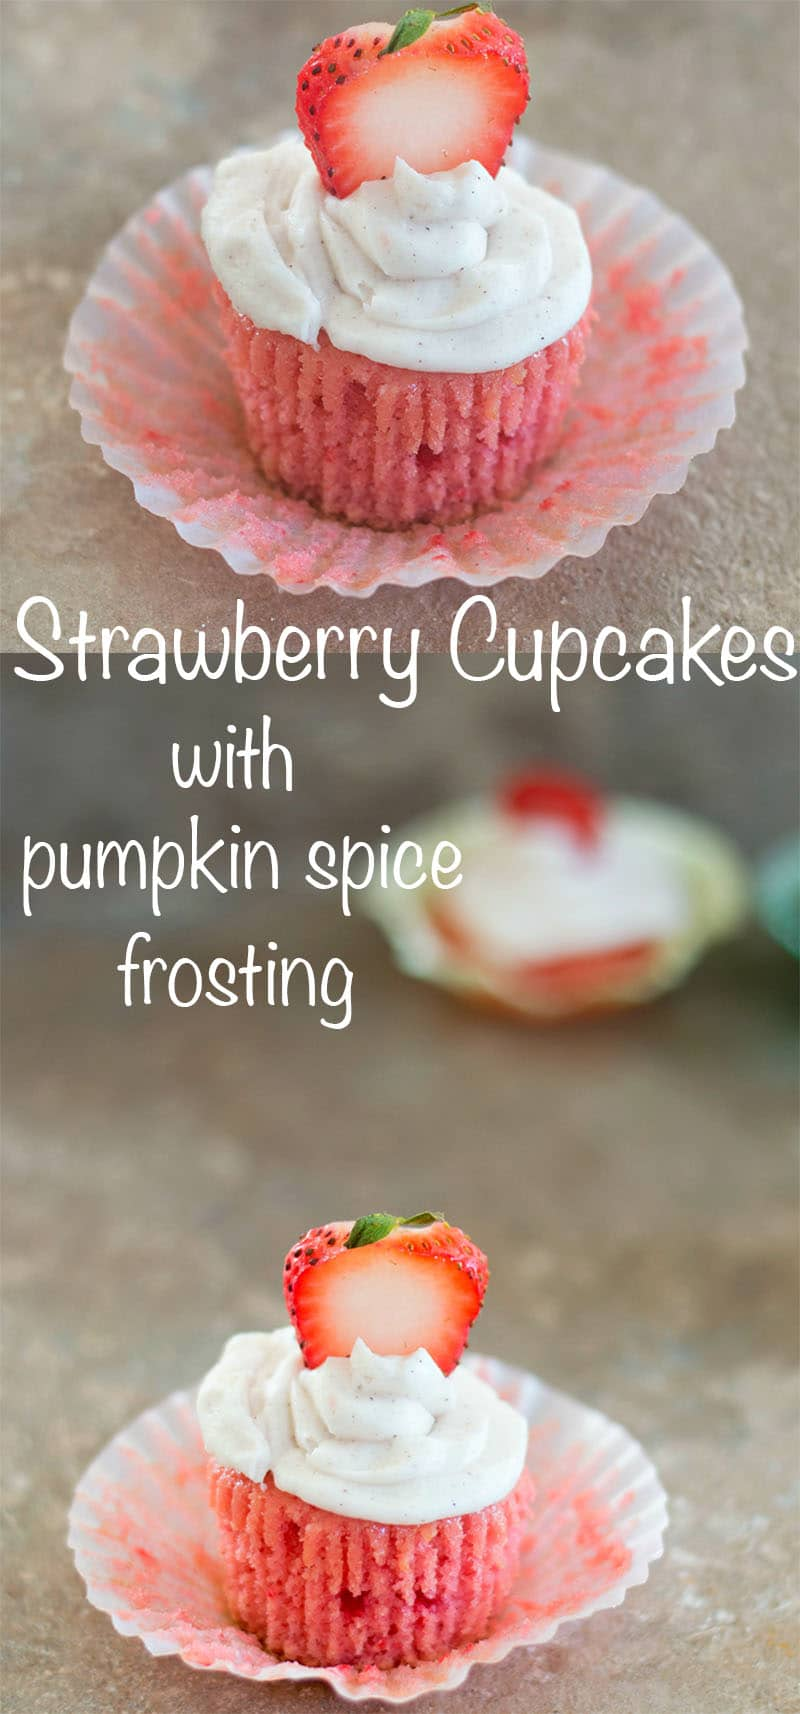 Easy to make Vegan Strawberry Cupcakes with pistachios and a very simple pumpkin spice frosting. Can be made in 30 minutes or less. Perfect for birthdays